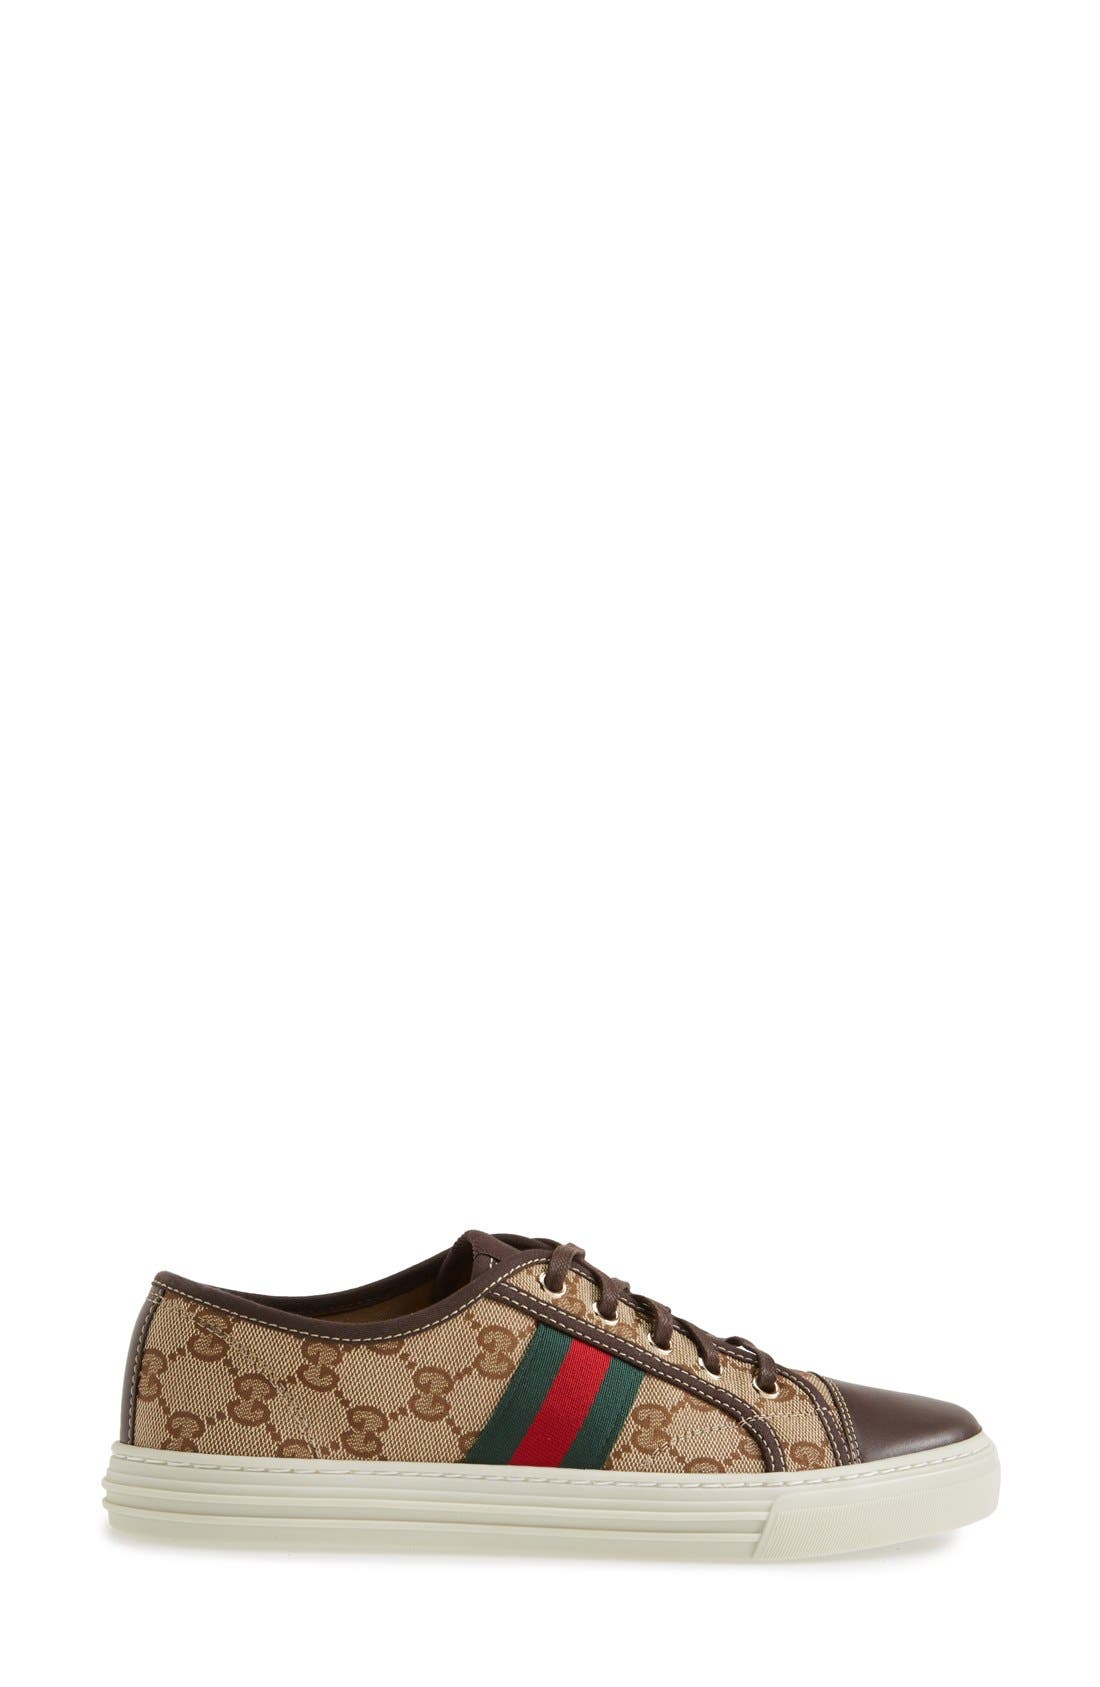 Alternate Image 4  - Gucci 'California' Sneaker (Women)